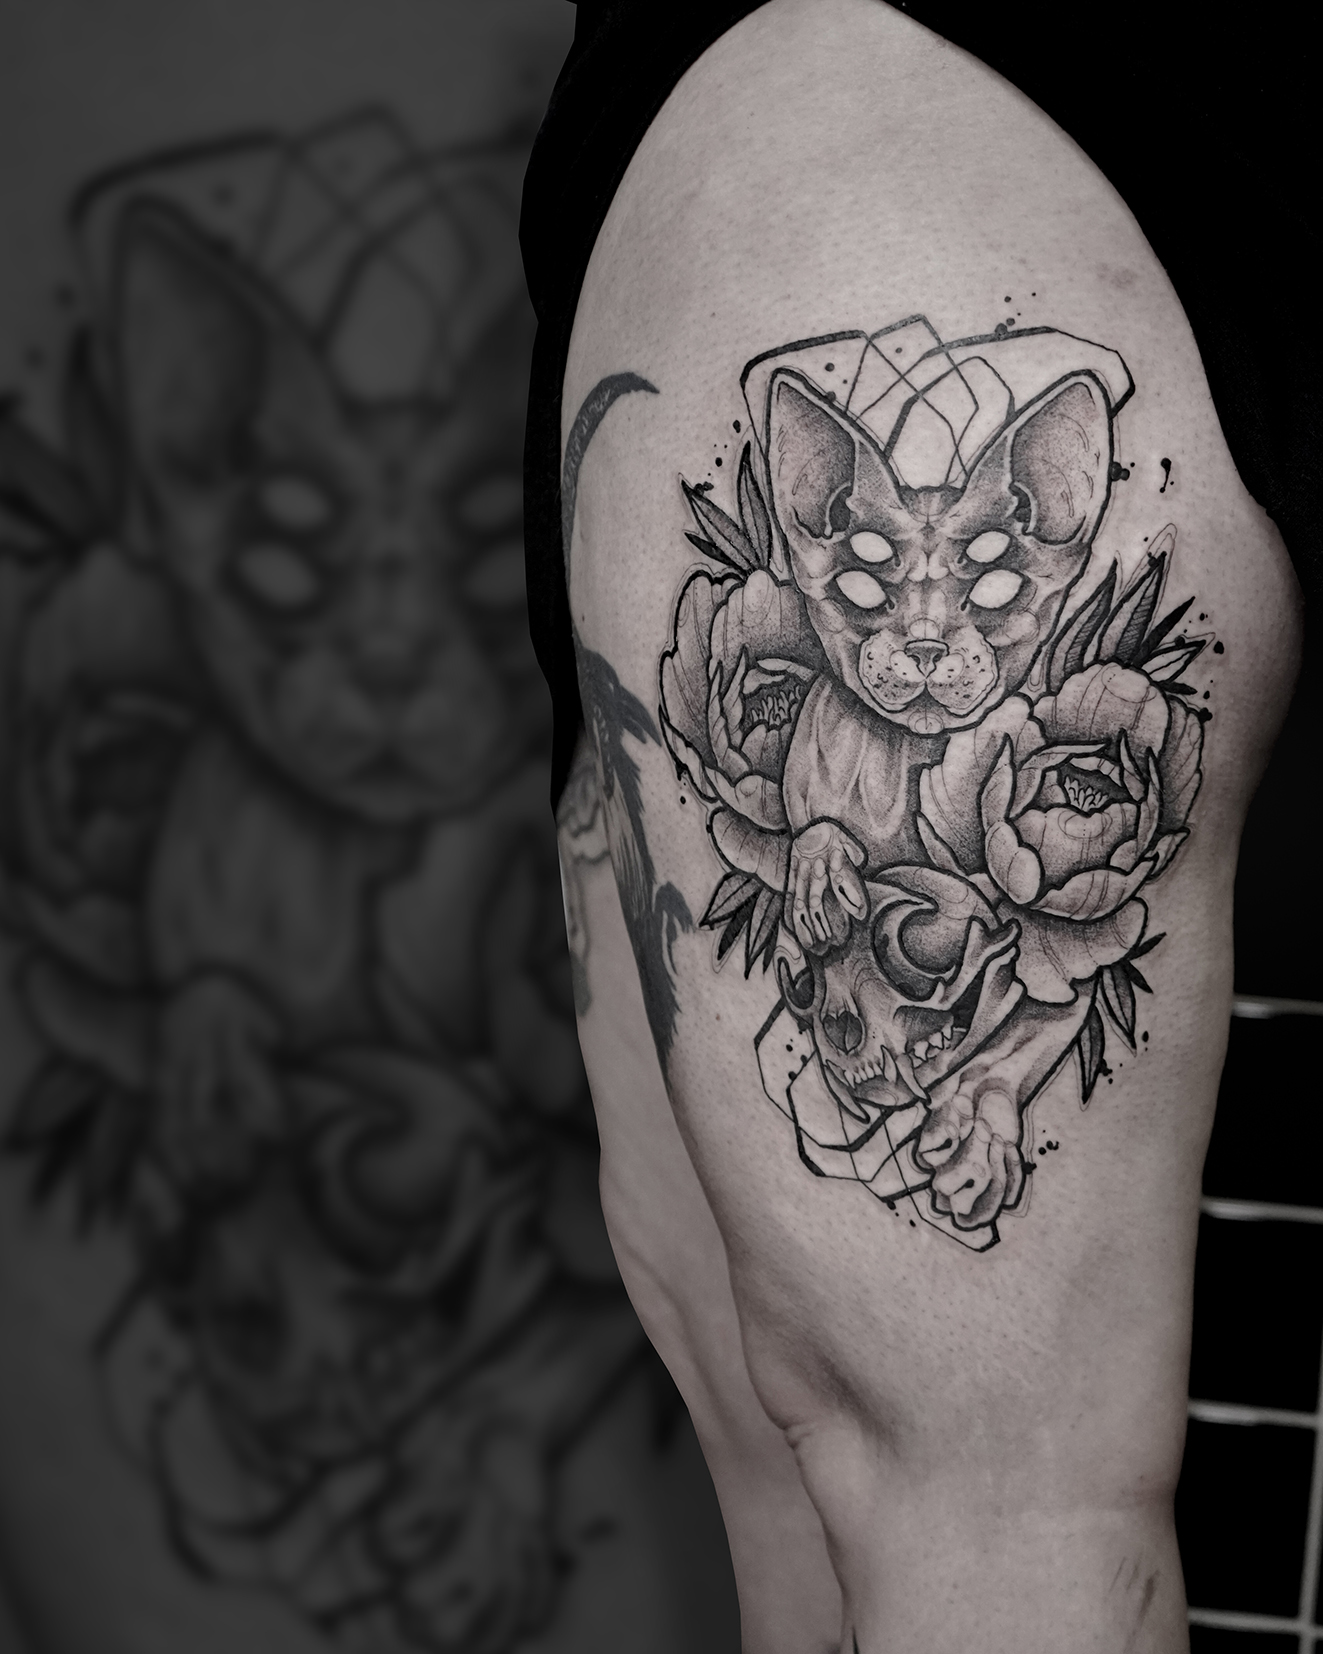 Tattoo Zincik - Sphynx Cat skull